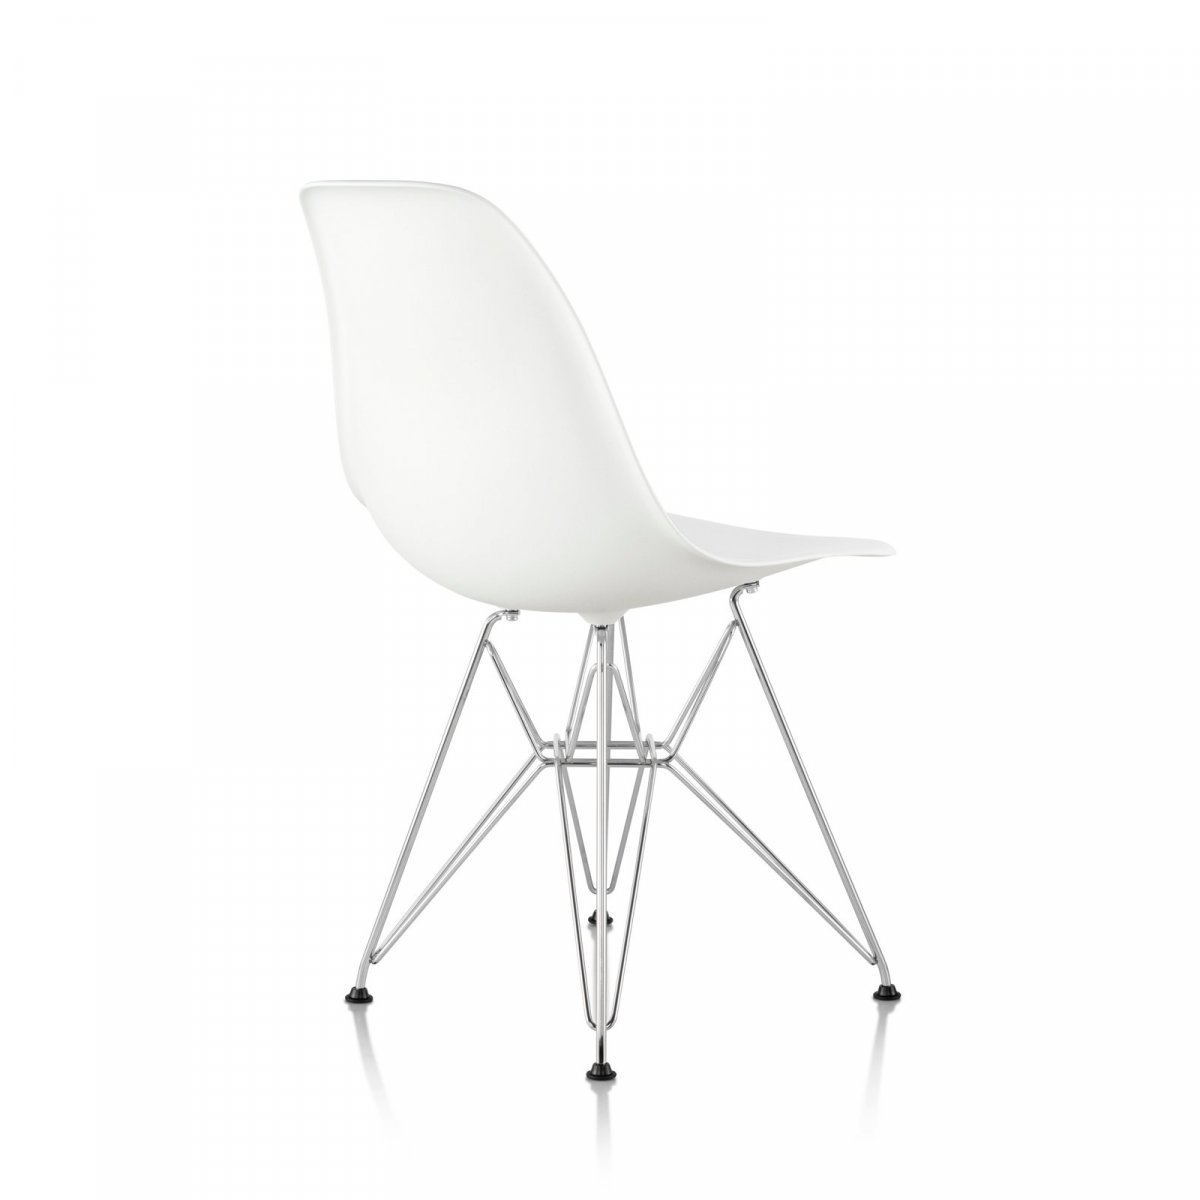 Eames Molded Plastic Side Chair Wire Base, white seat and back, trivalent chrome base, back view.